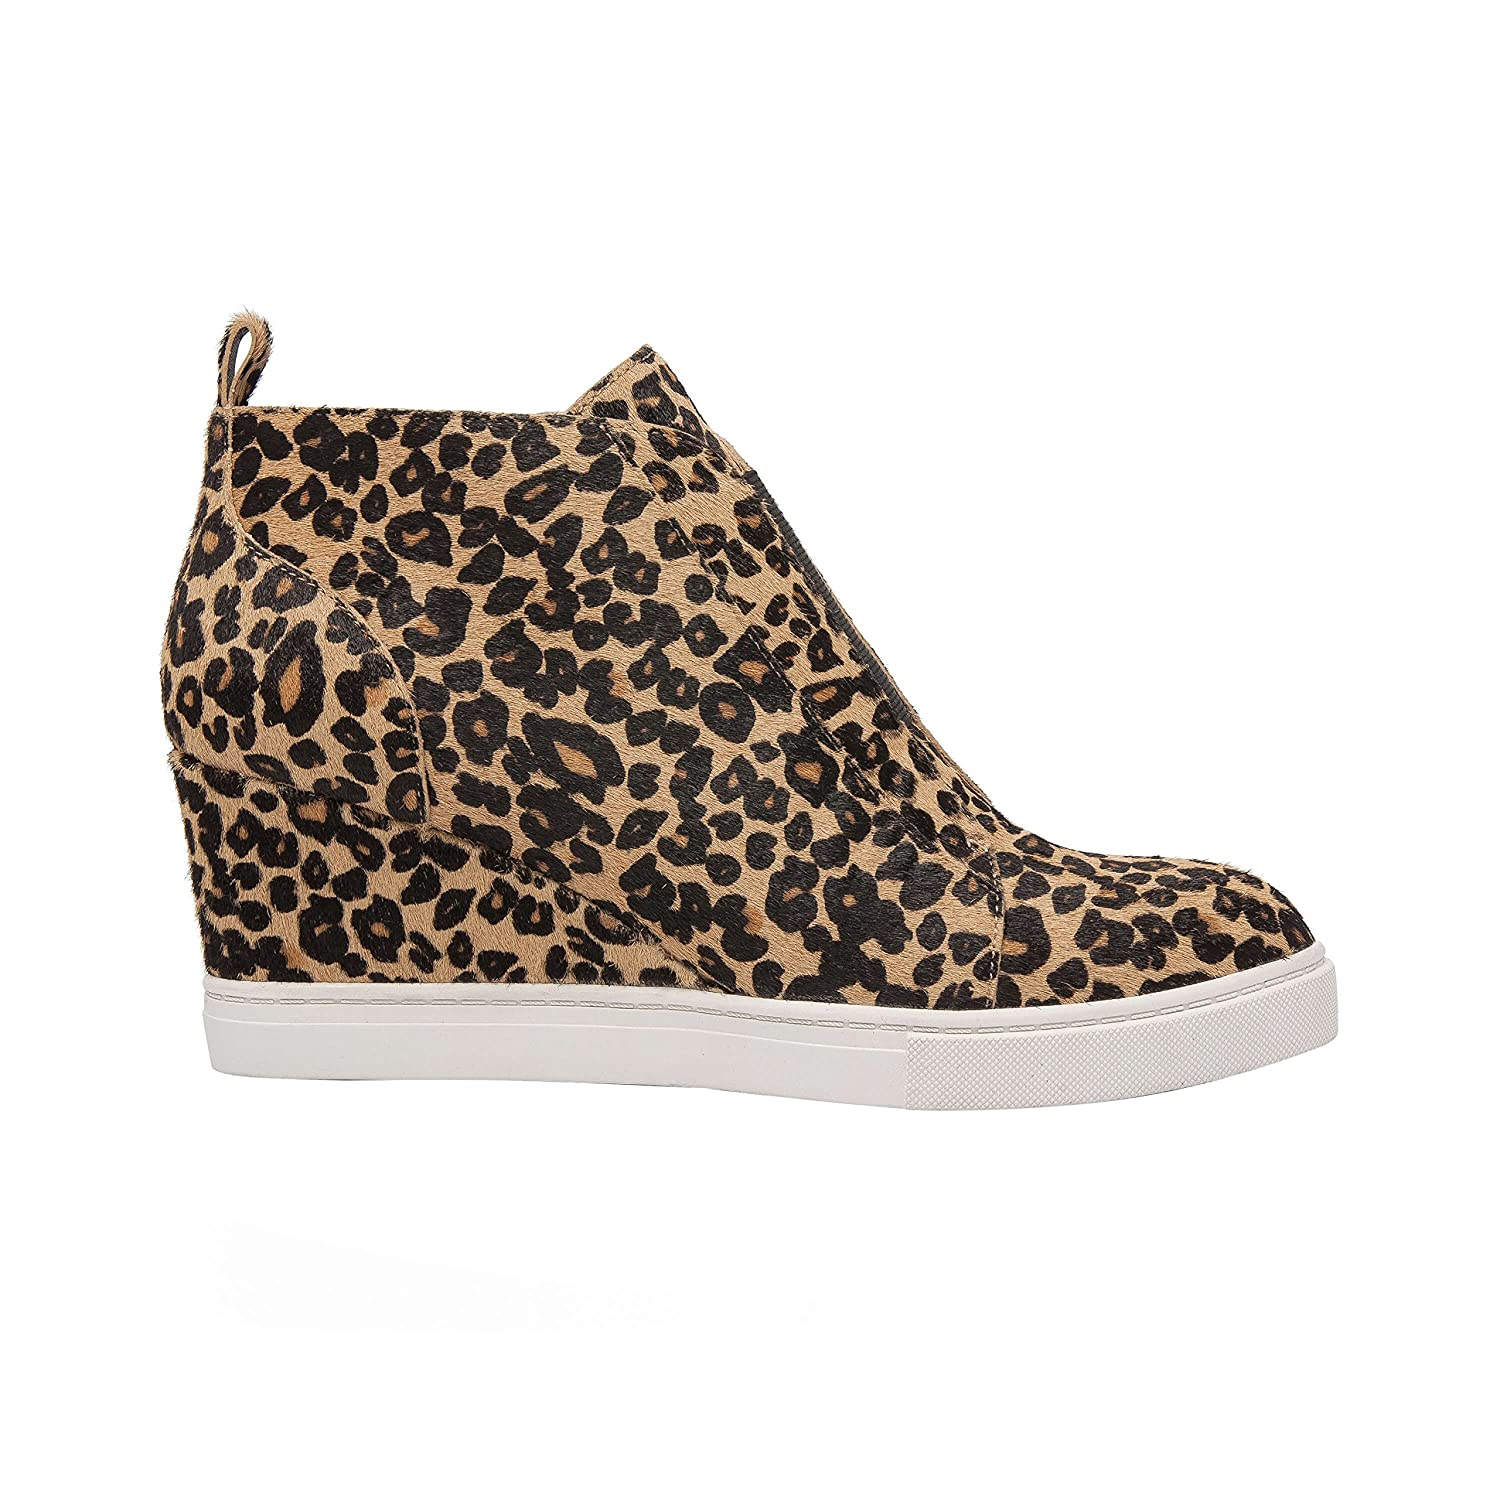 Felicia | Women's Platform Wedge Bootie Sneaker Leather Or Suede B07F6P27F9 8 M US|Sand/Black Leopard Print Hair Calf